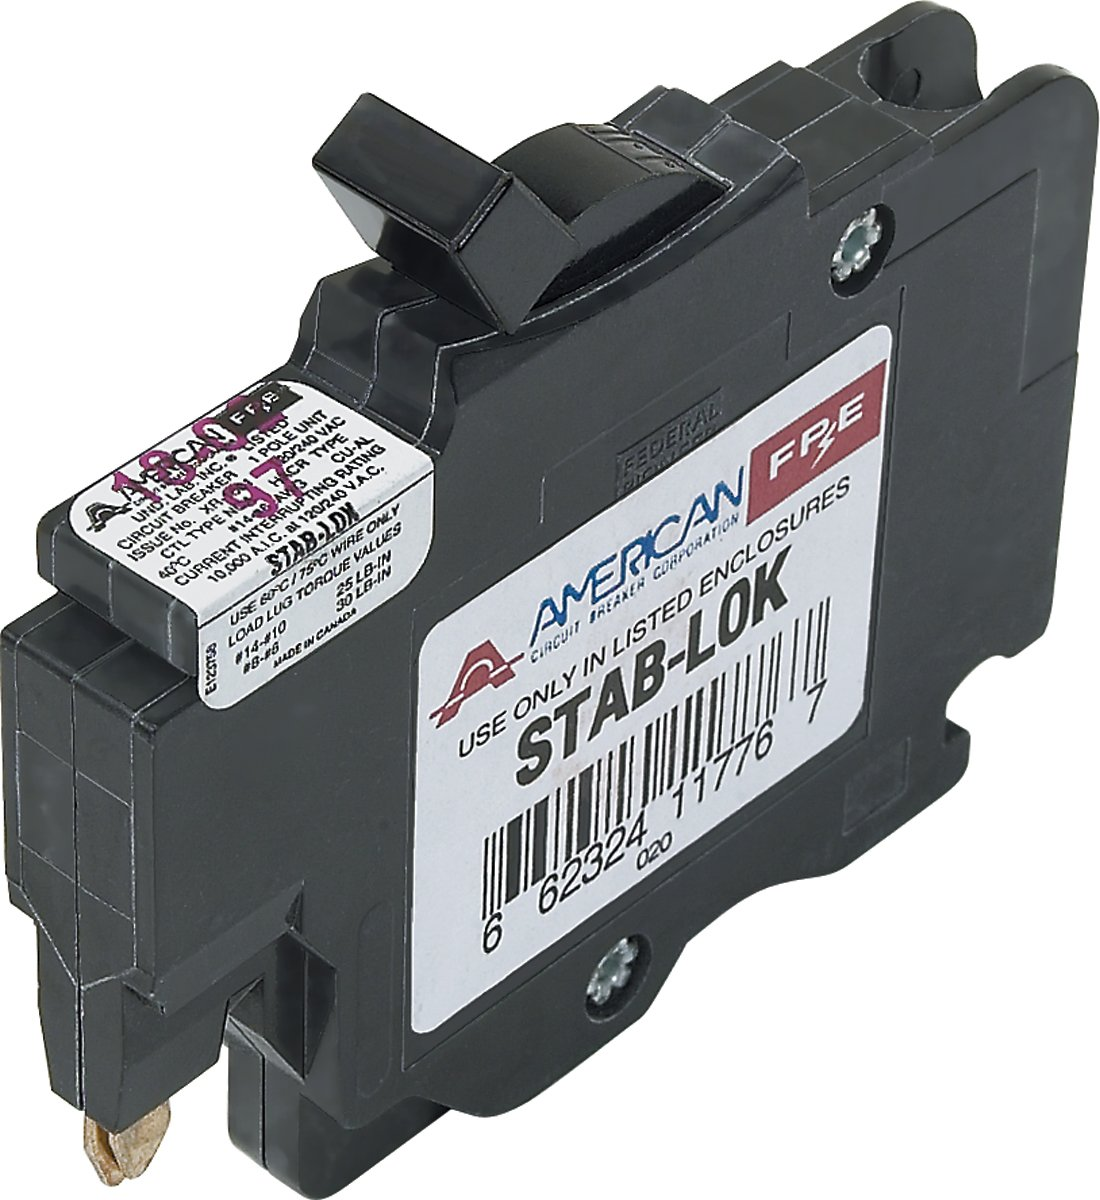 American Federal Pacific Circuit Breaker 1 Pole 15 Amp Thin Series Electrical Breakers Load Centers Fuses Panels Magnetic